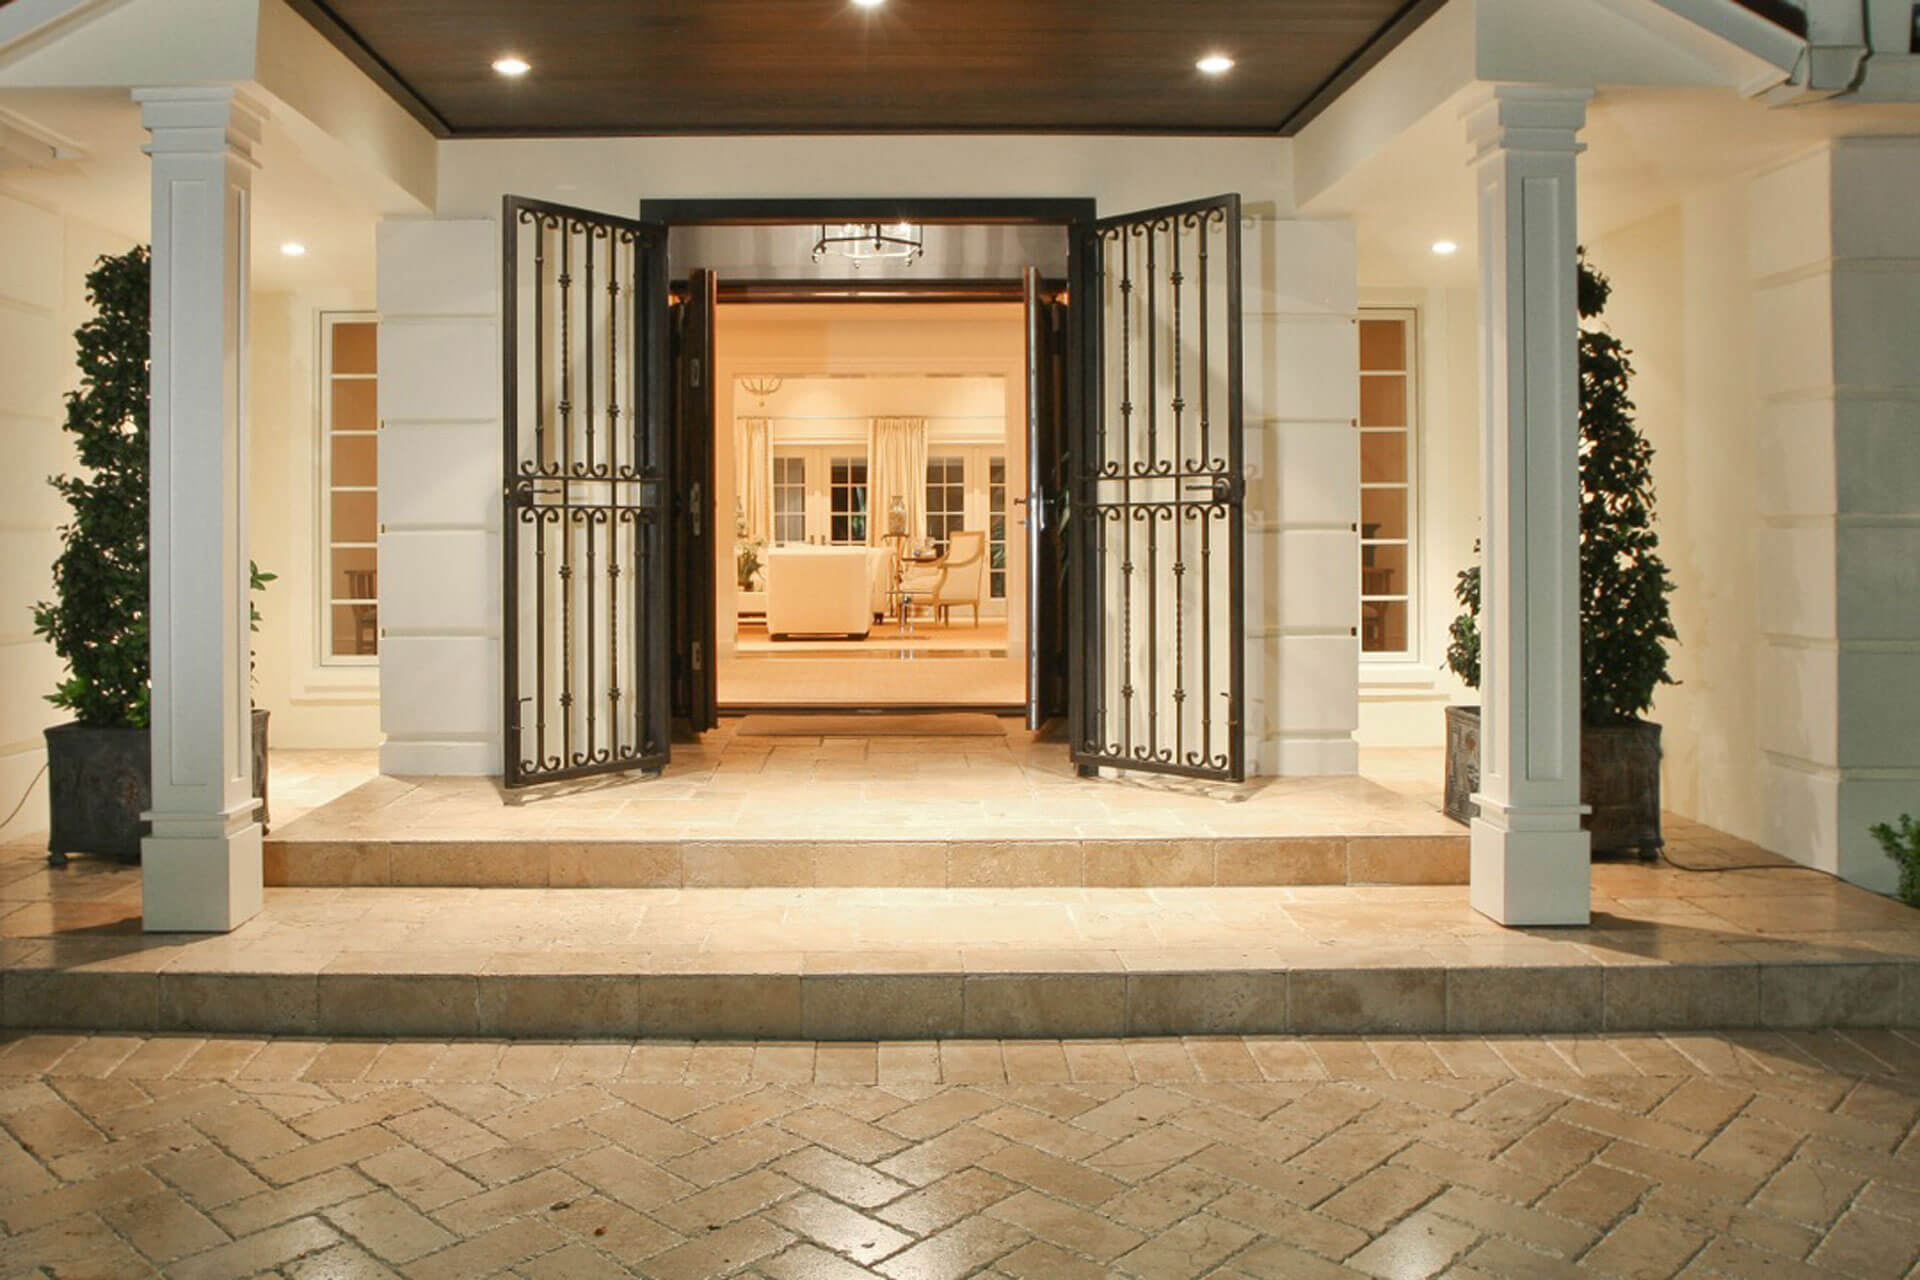 2_Estate-Owner-2014_Peter_70-Curlew-Rd